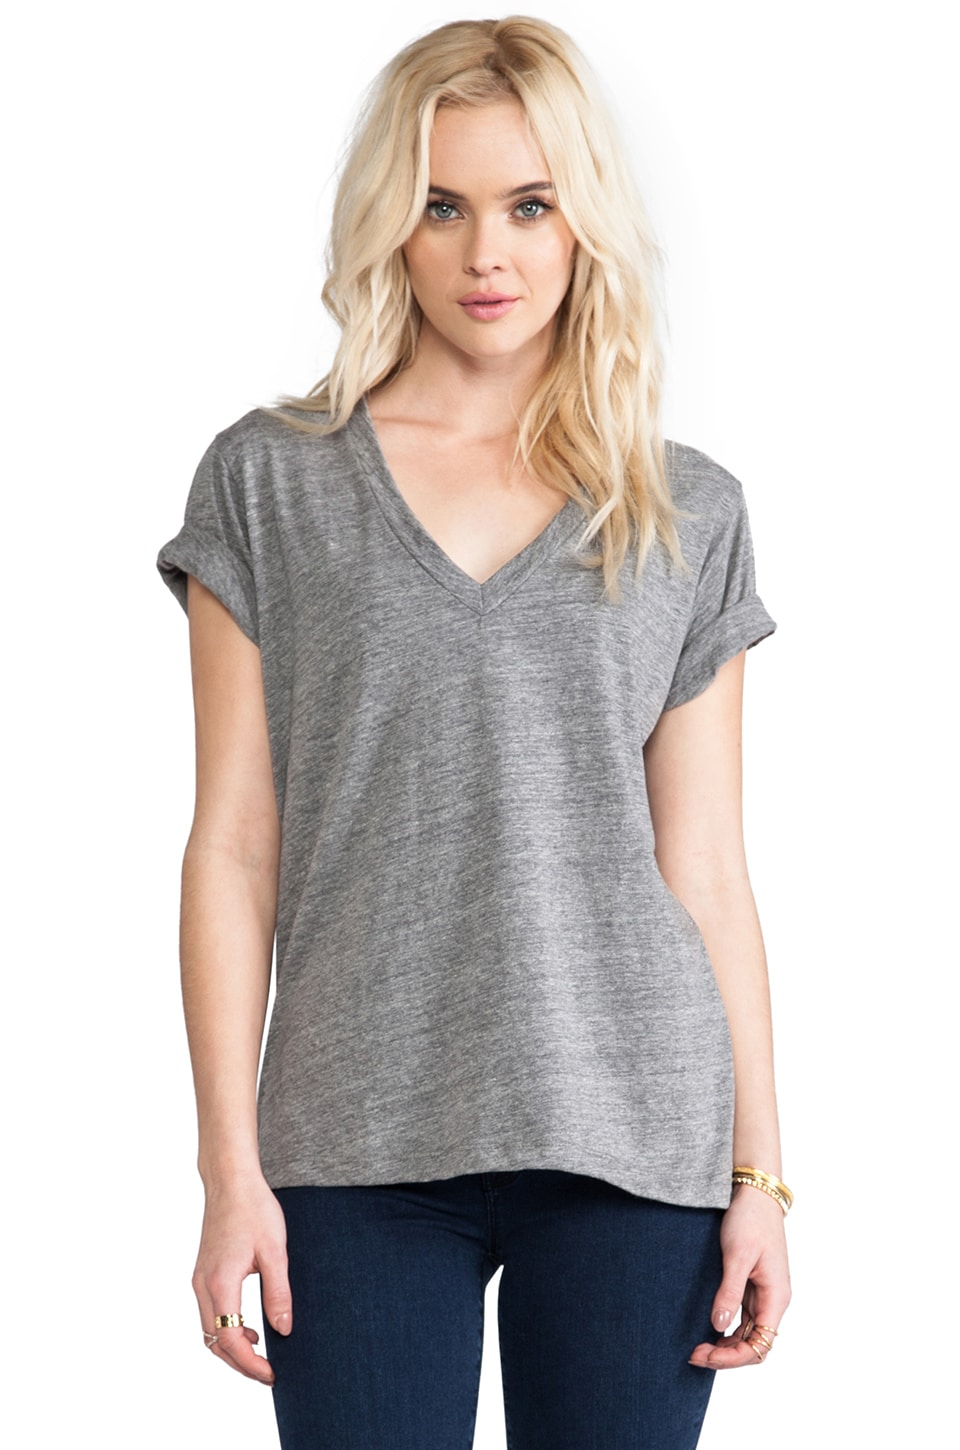 A Fine Line Levi V Neck Tee in Heather Grey